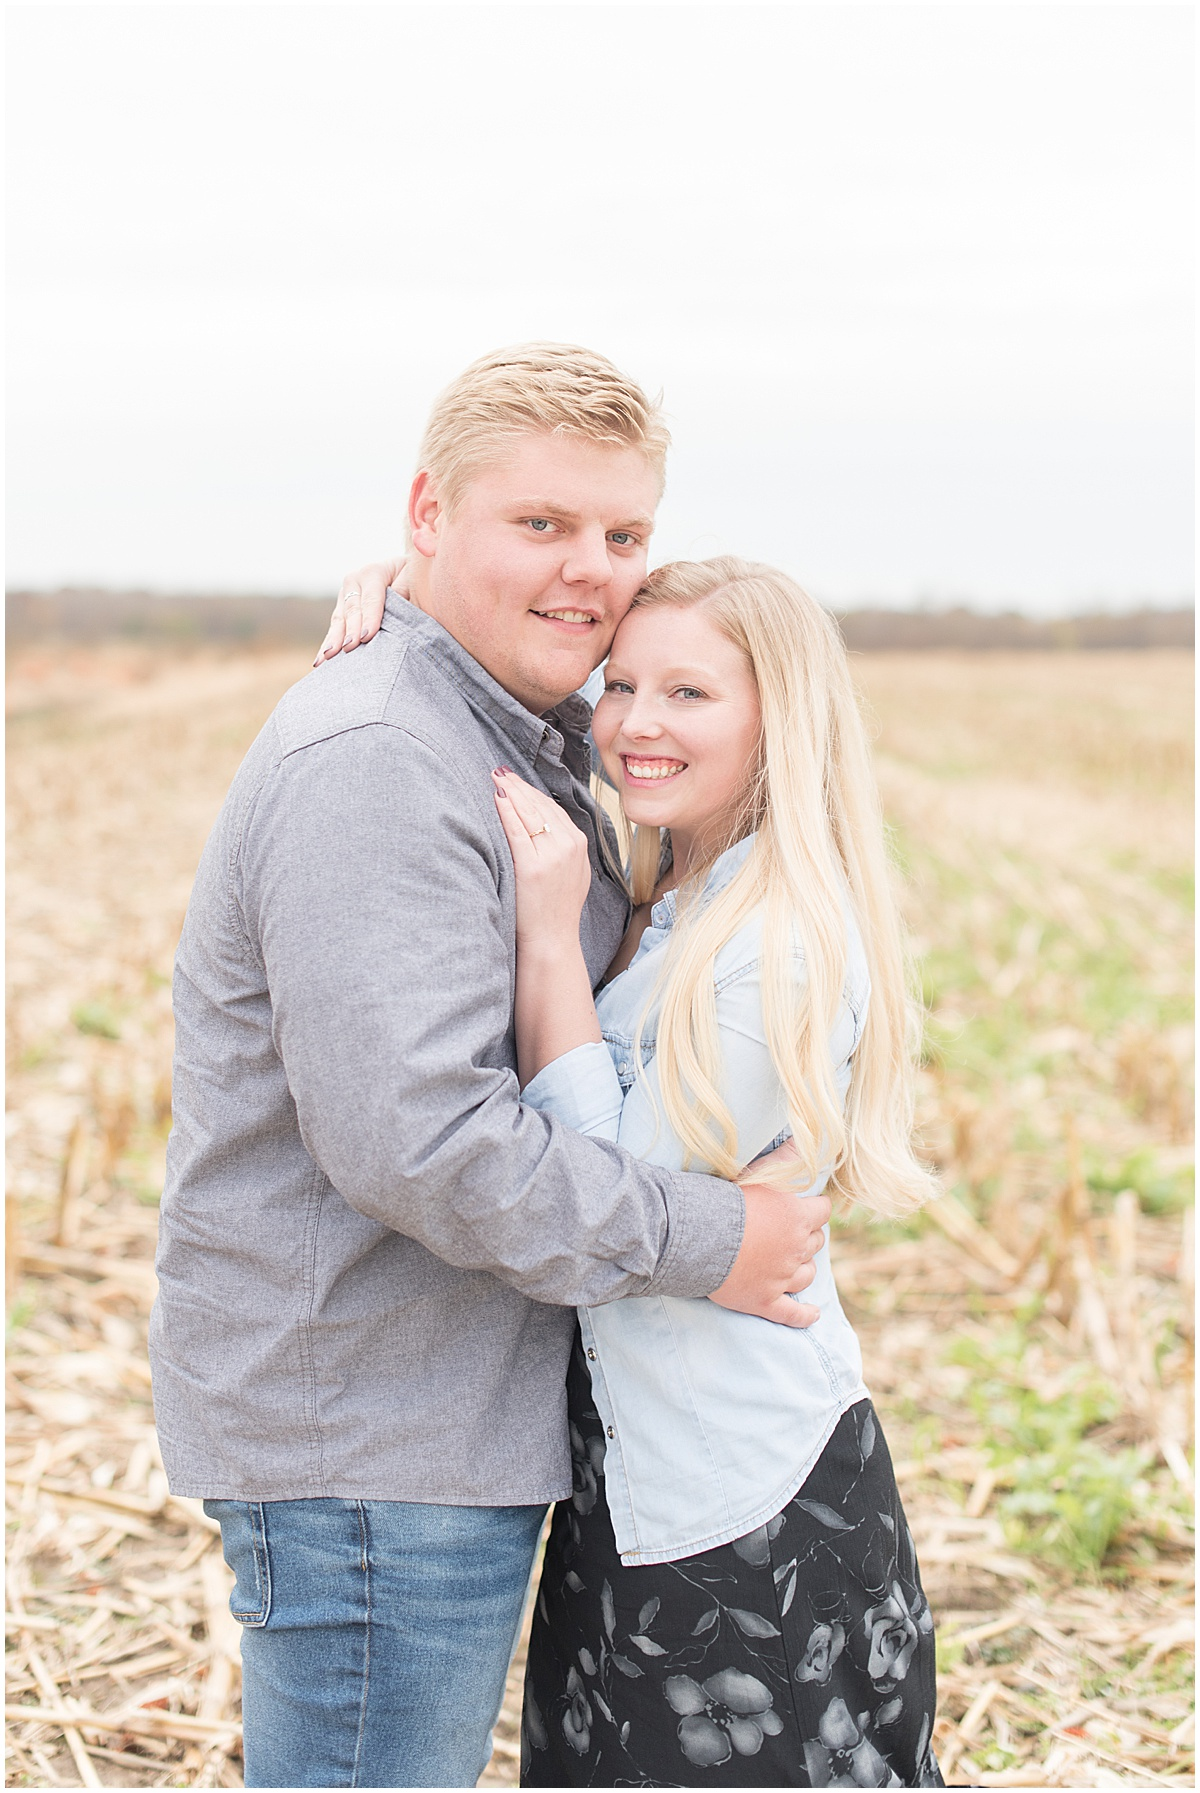 Tyler Van Wanzeele and Baileigh Fleming engagement photos at Wea Creek Orchard in Lafayette Indiana9.jpg